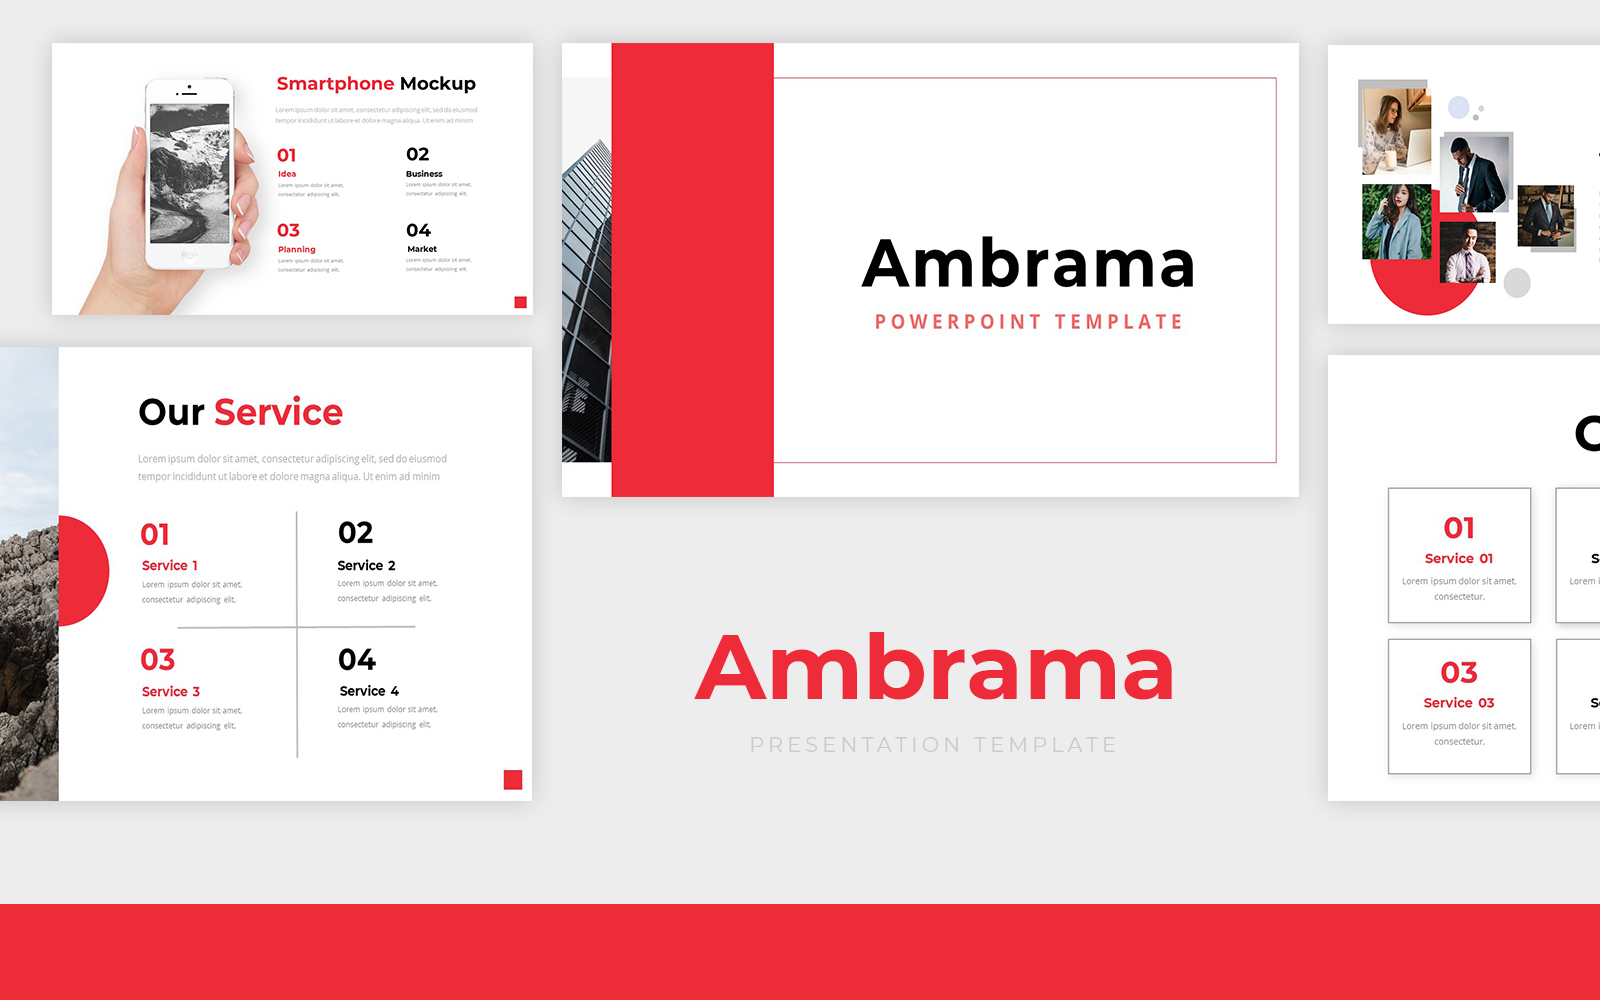 Ambrama Powerpoint Template